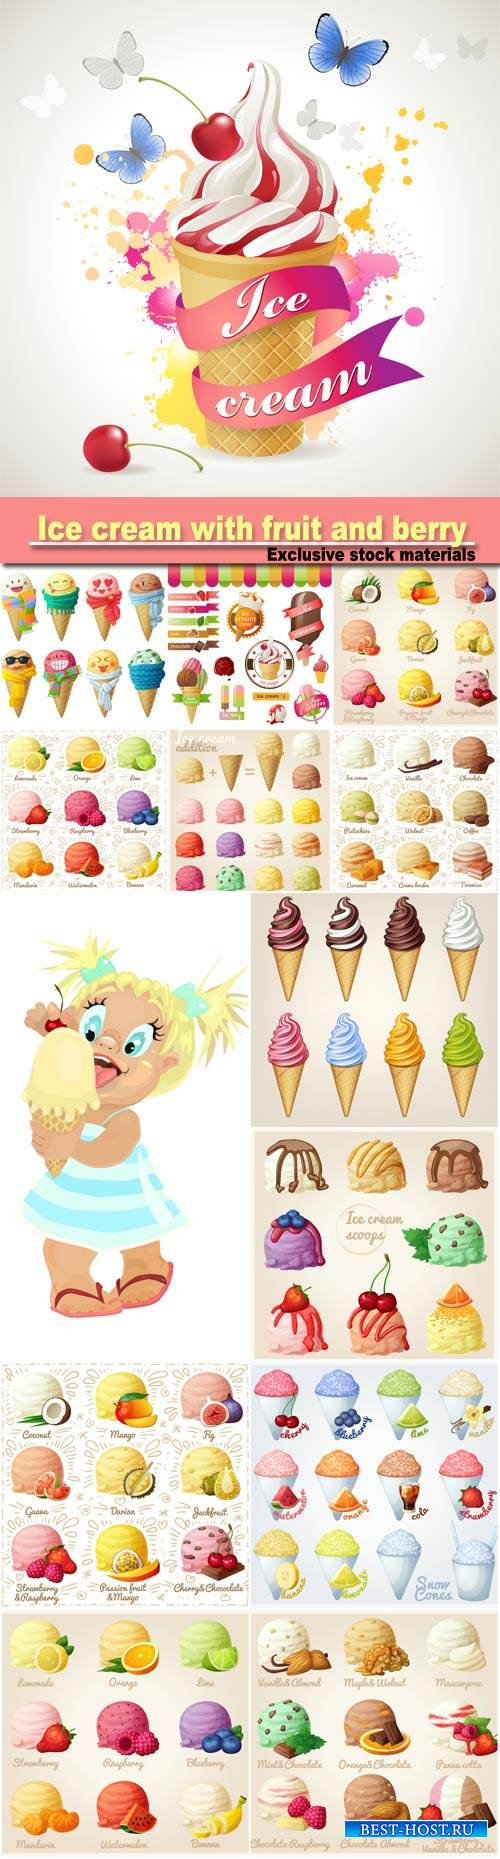 Ice cream scoops with different fruit and berry flavors, lemon, orange, lime, strawberry,raspberry, blueberry, mandarin, watermelon, banana